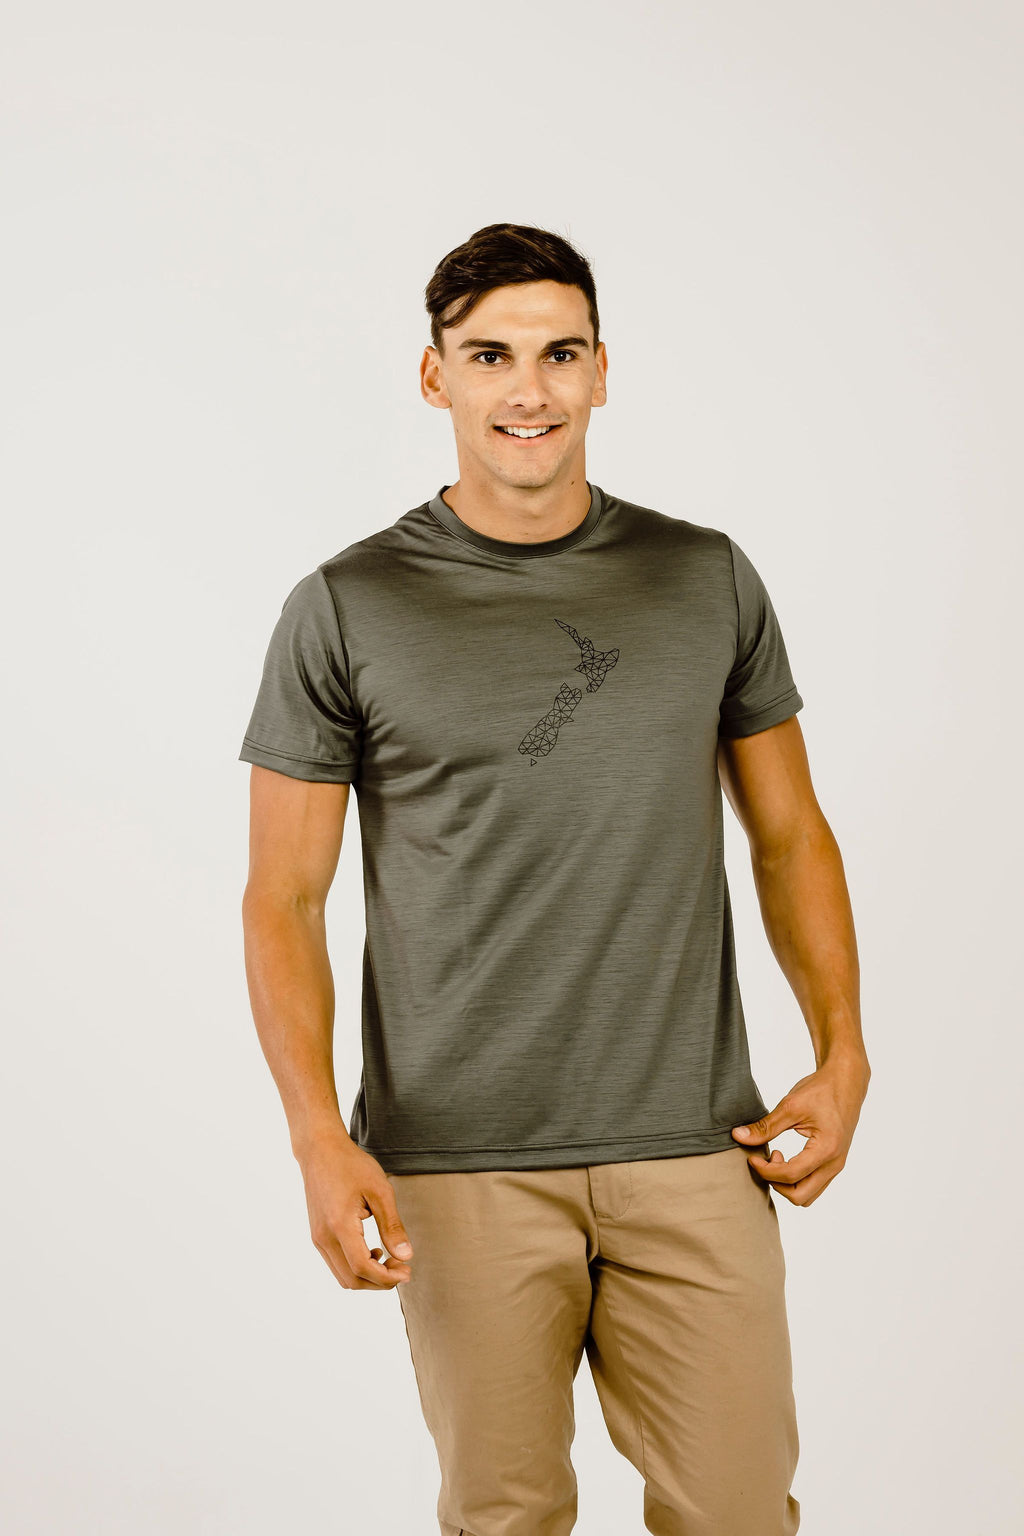 Merino NZ Short Sleeve T-Shirt - Kapeka